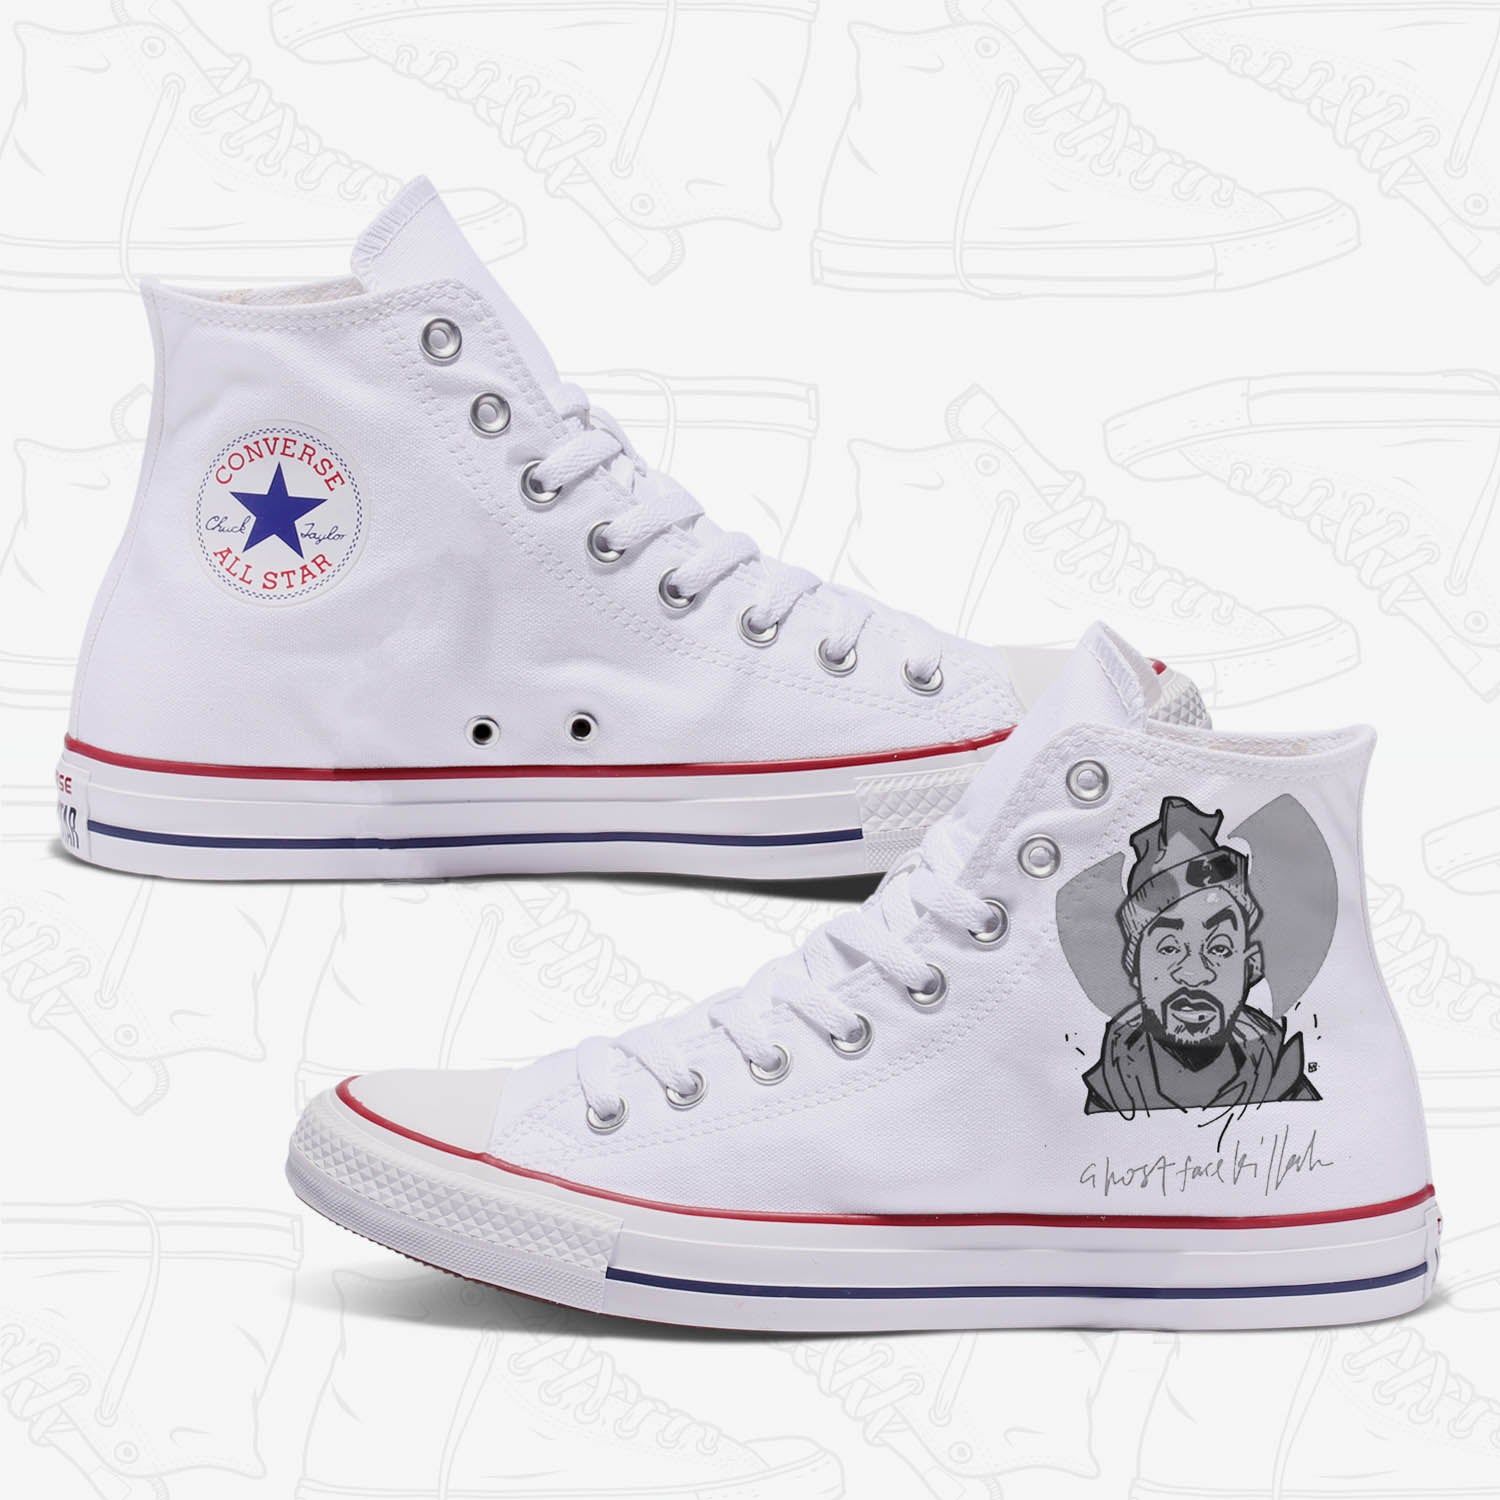 Ghostface Killah Custom Converse